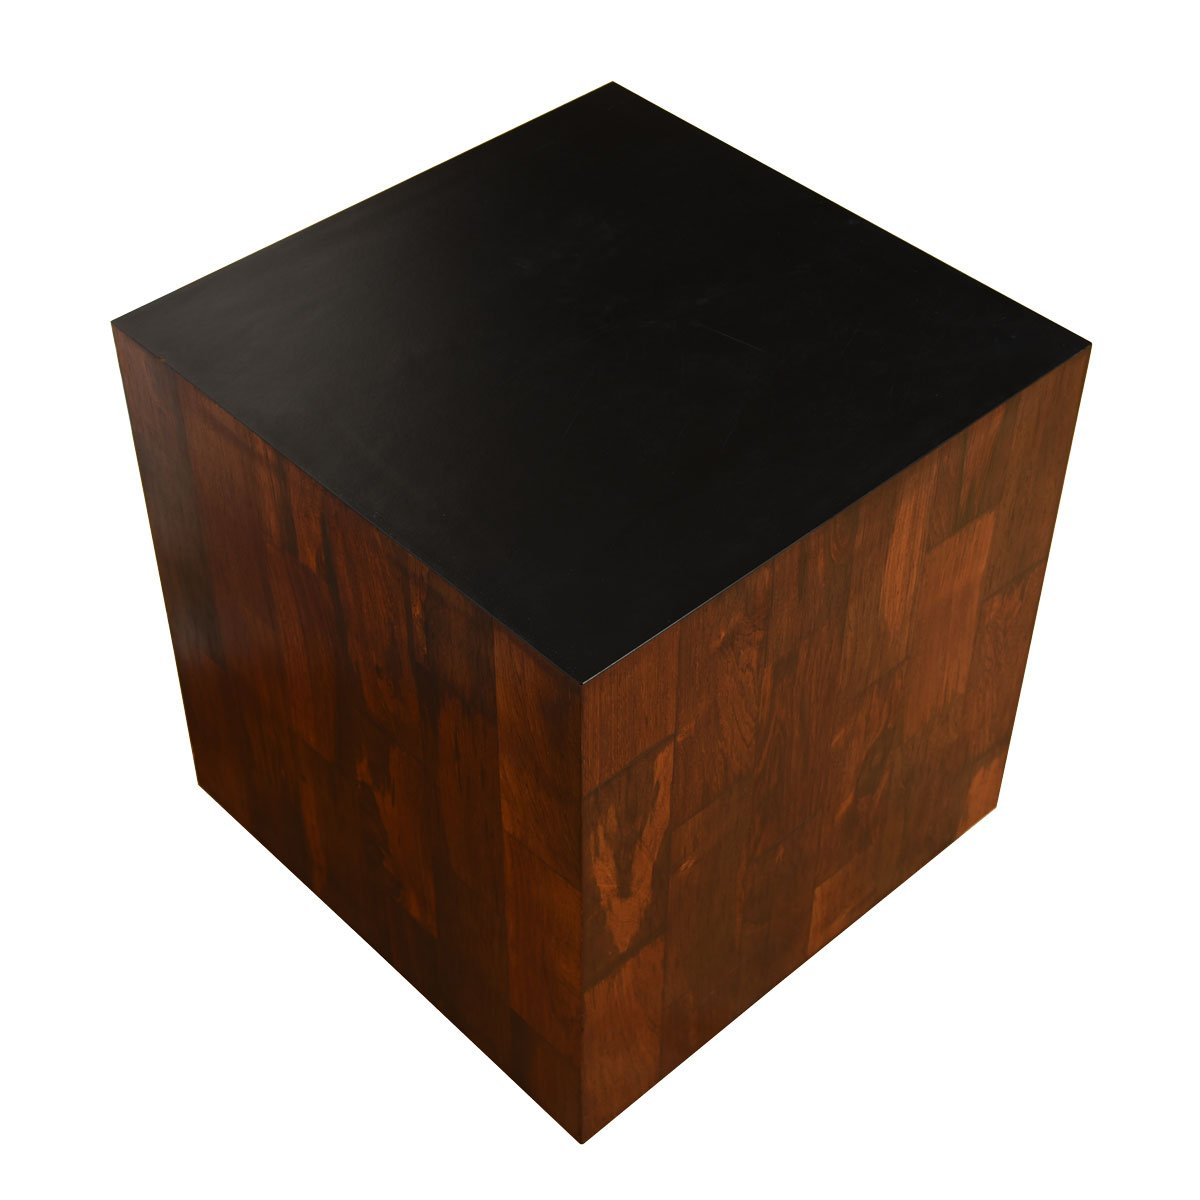 Rosewood Accent Table / Stool with Removable Cushion